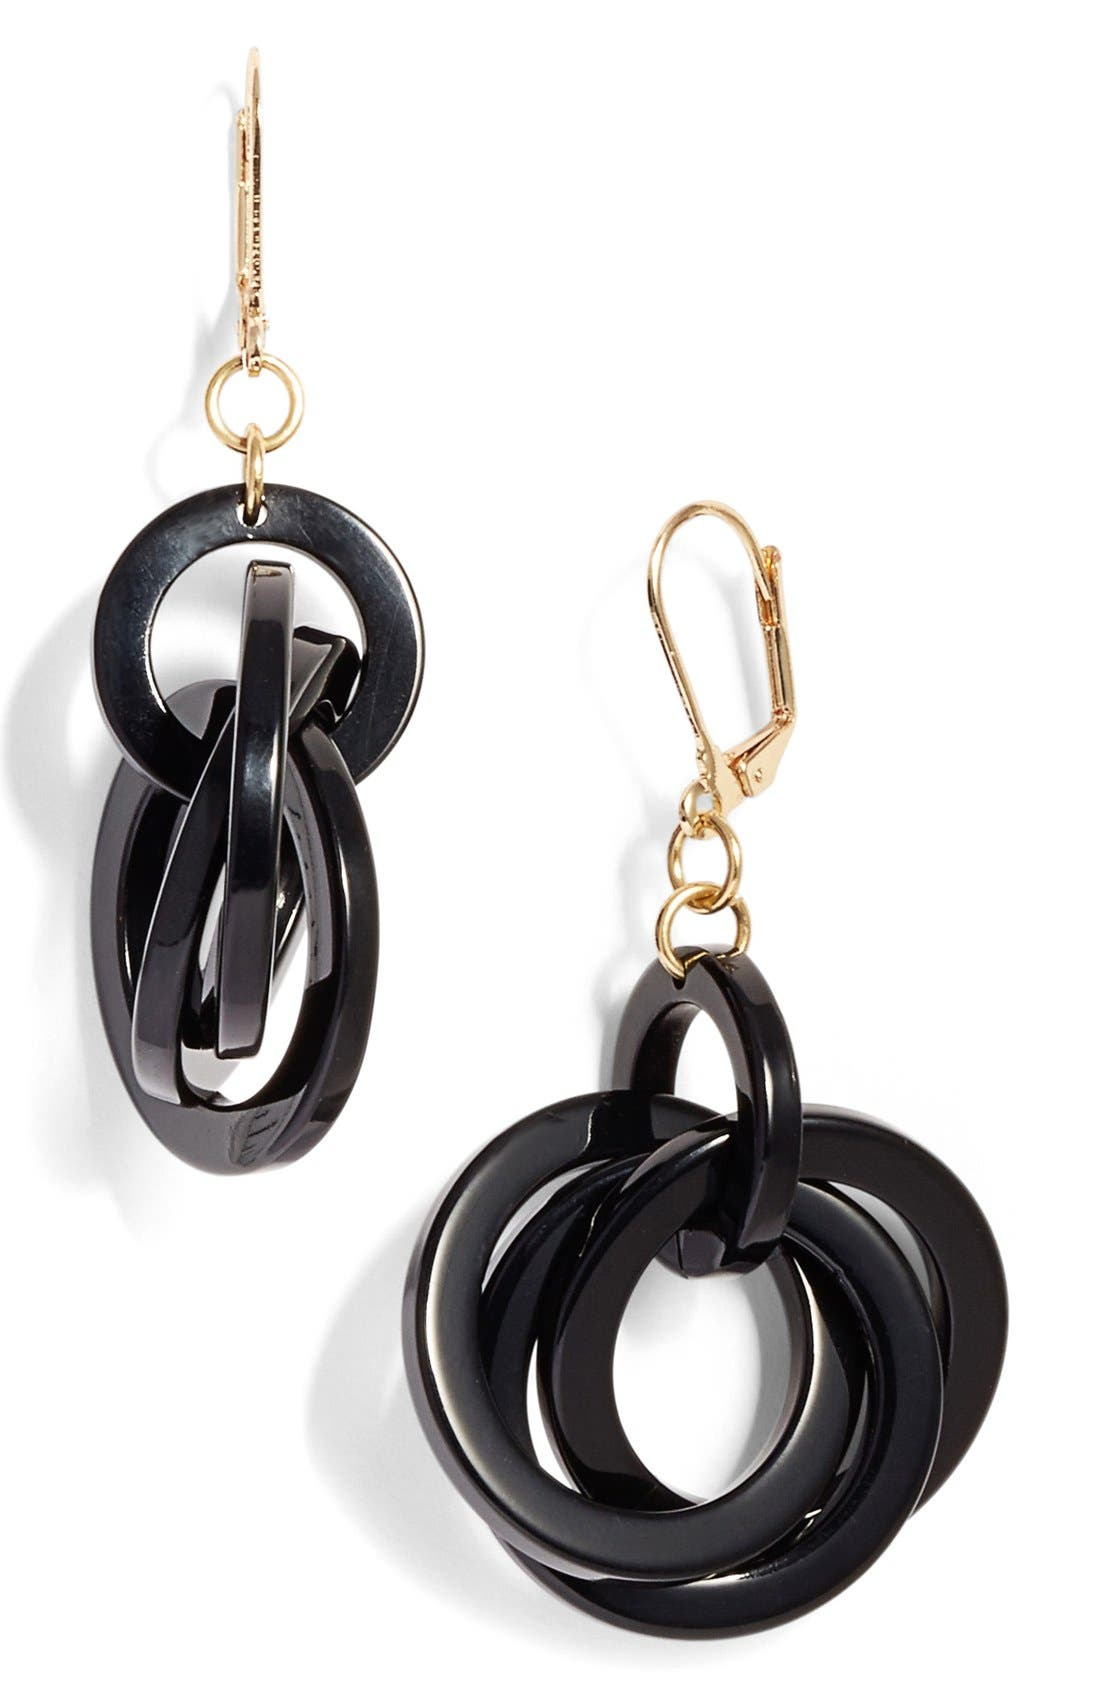 'Twisted Loops' Drop Earrings,                             Main thumbnail 1, color,                             001